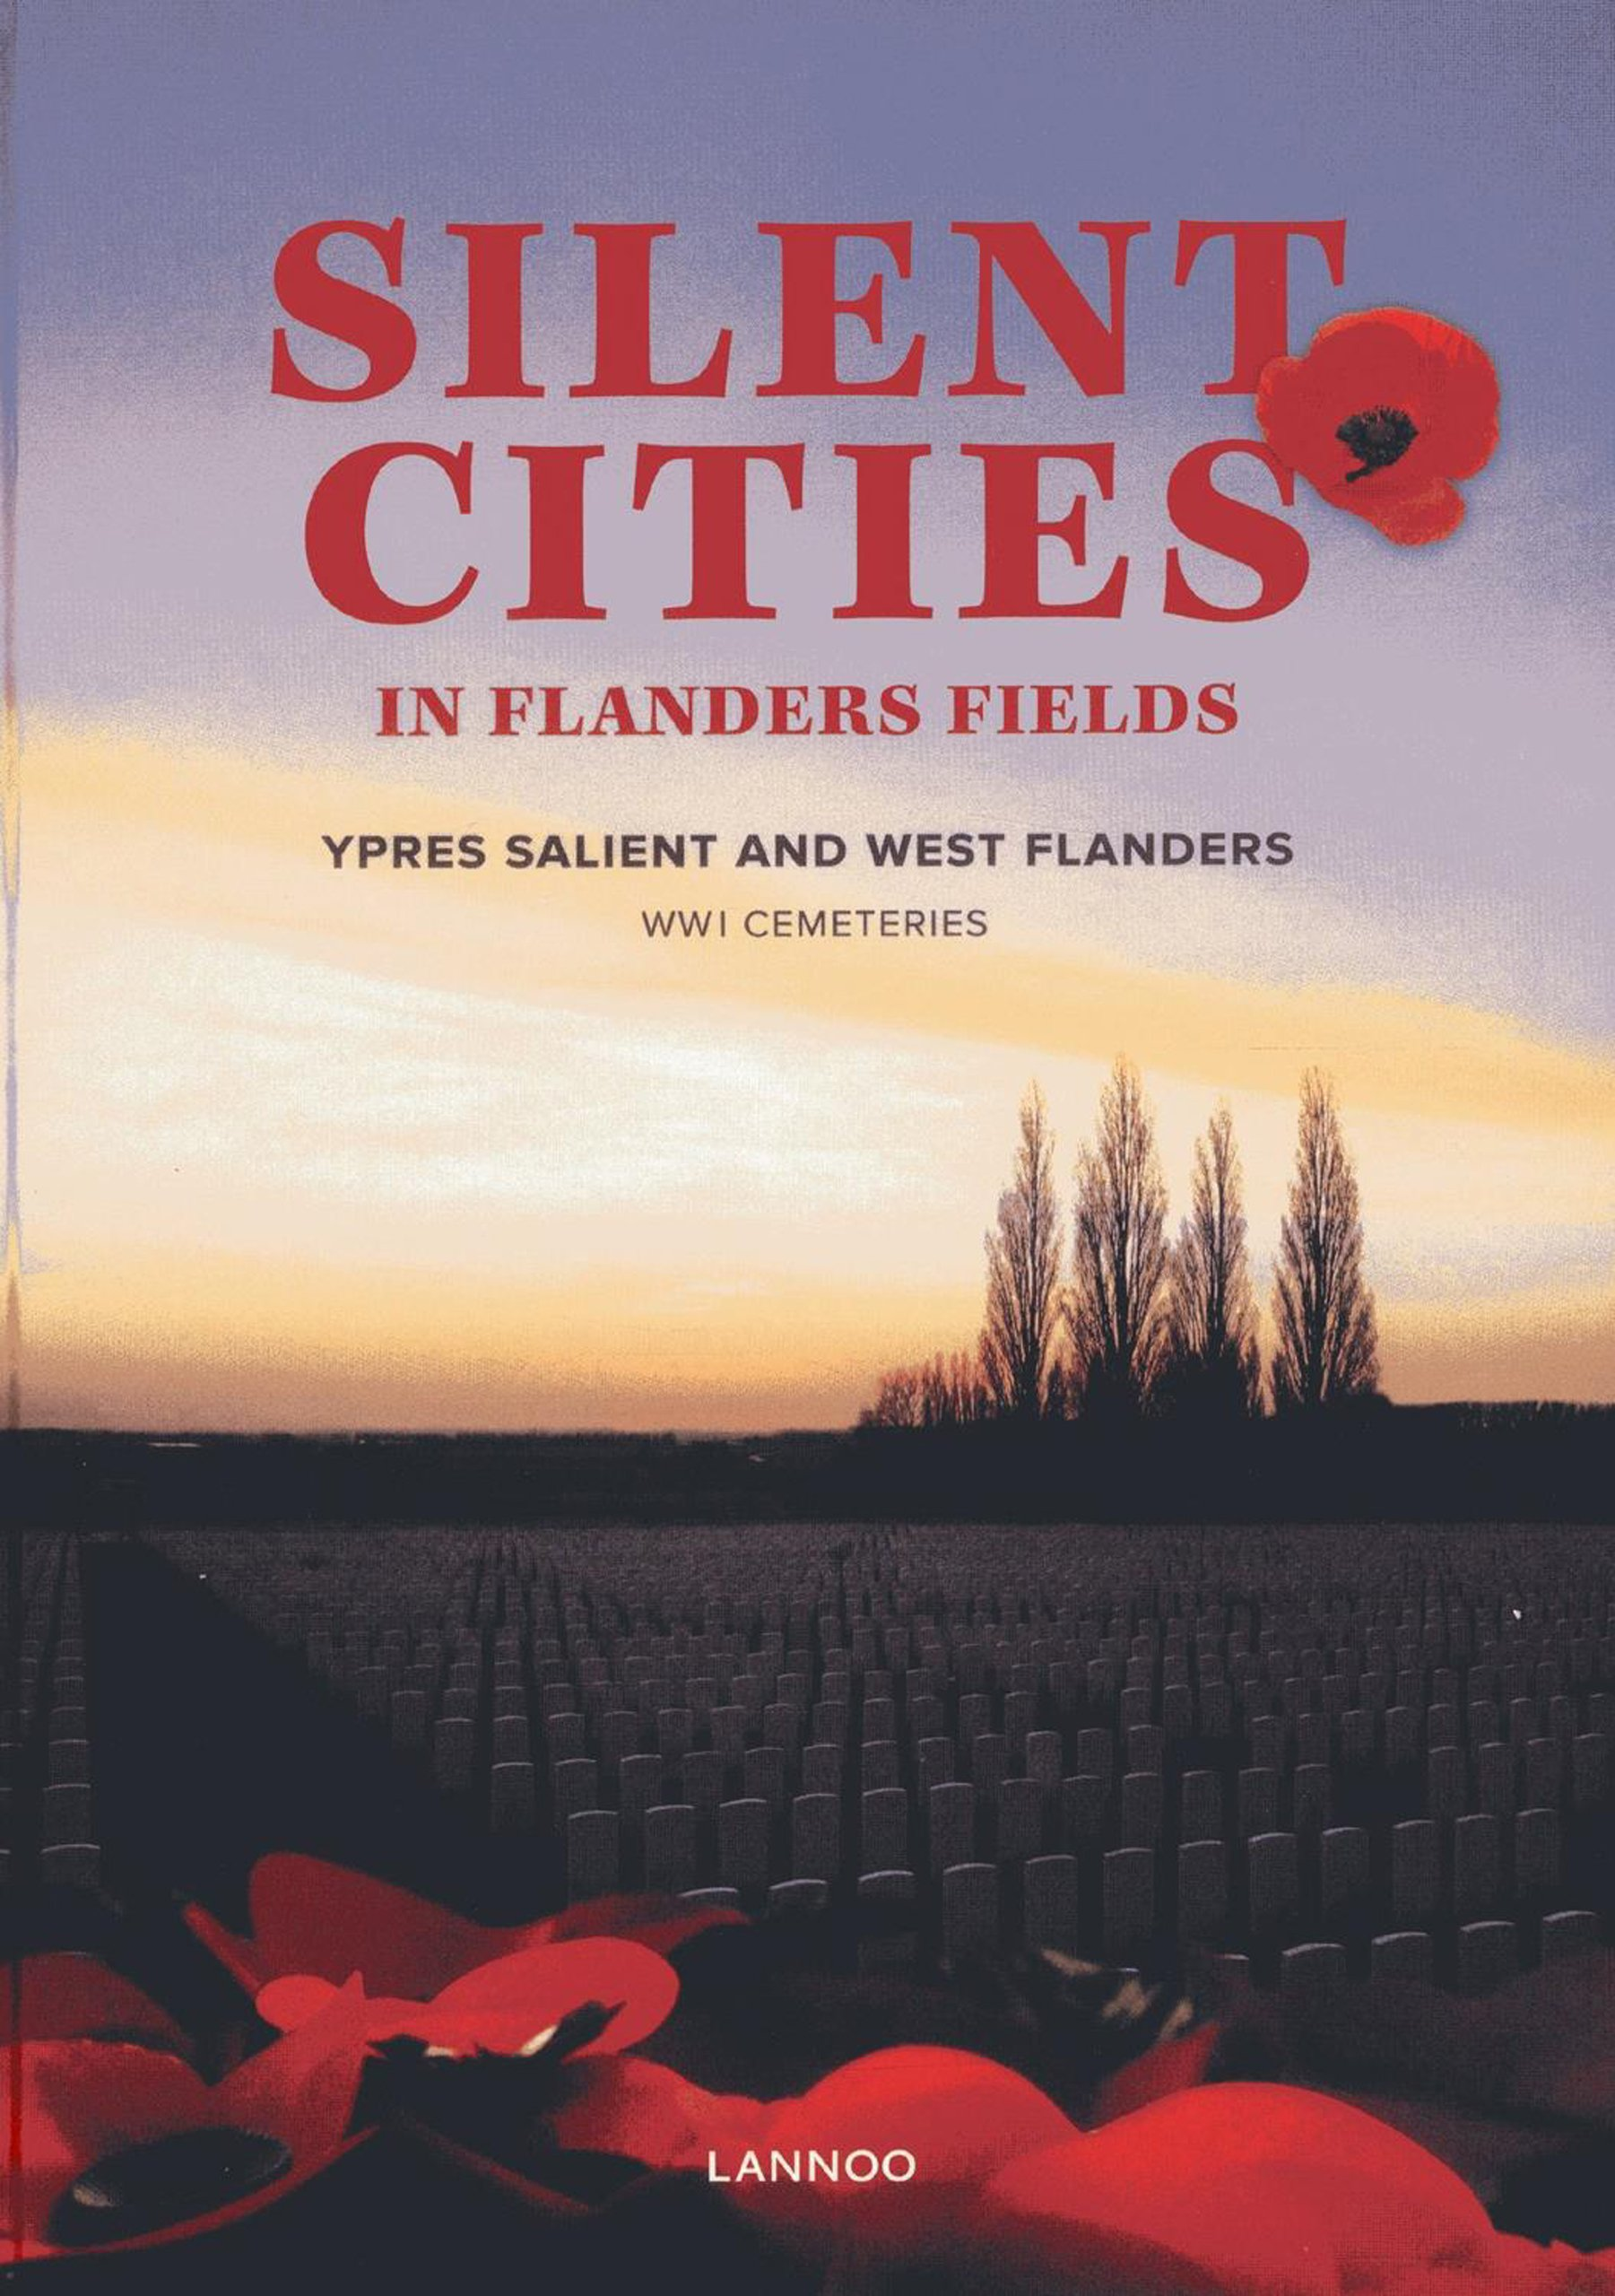 Silent Cities in Flanders Fields: The WWI Cemeteries of Ypres Salient and West Flanders PDF ePub ebook